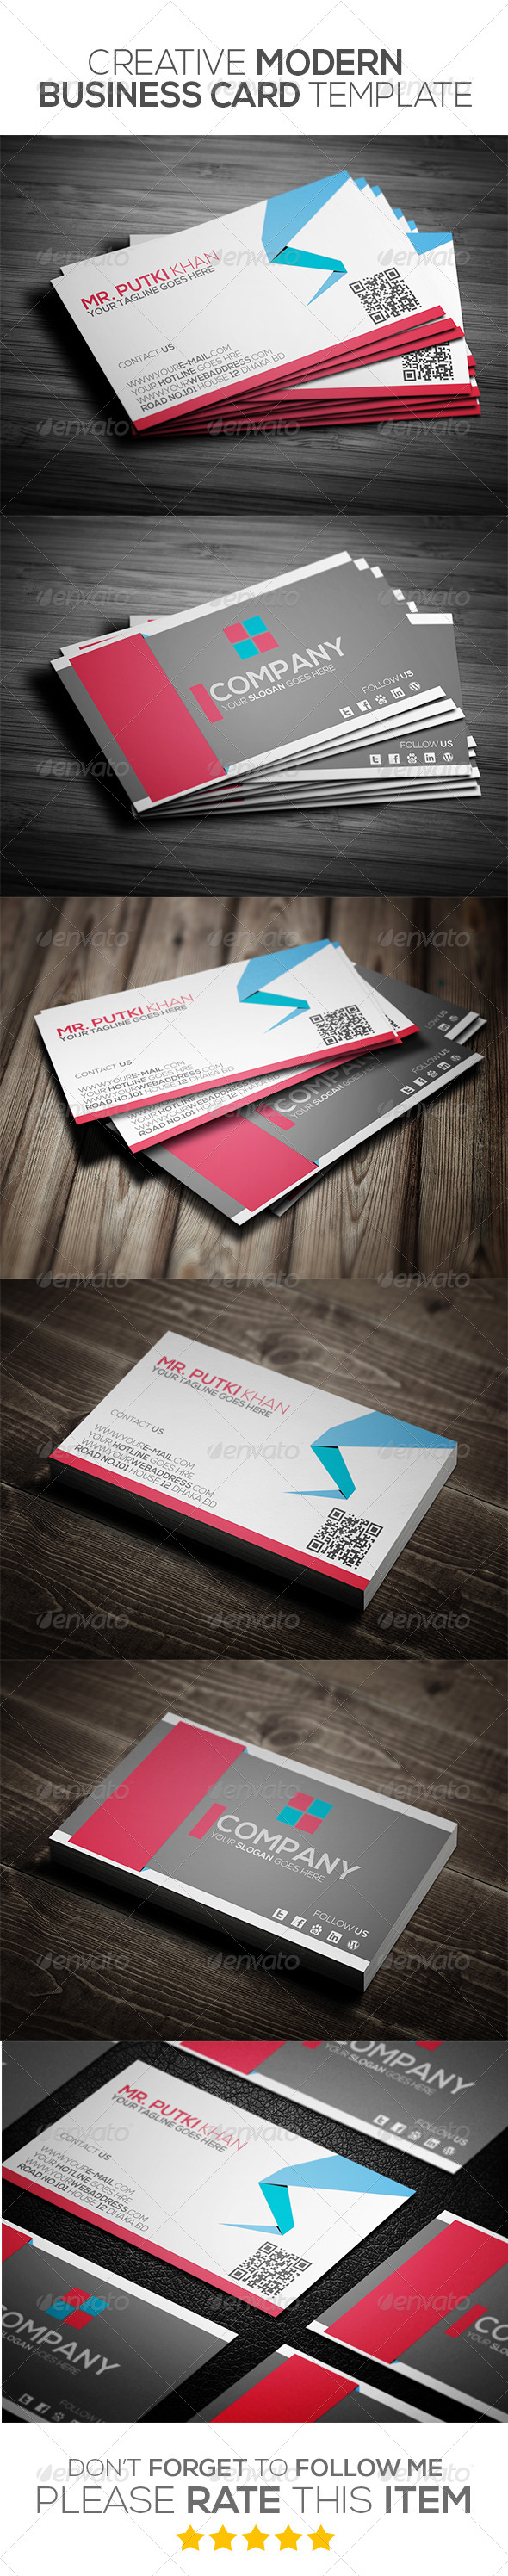 GraphicRiver Creative Modern Business Card Template 6965111